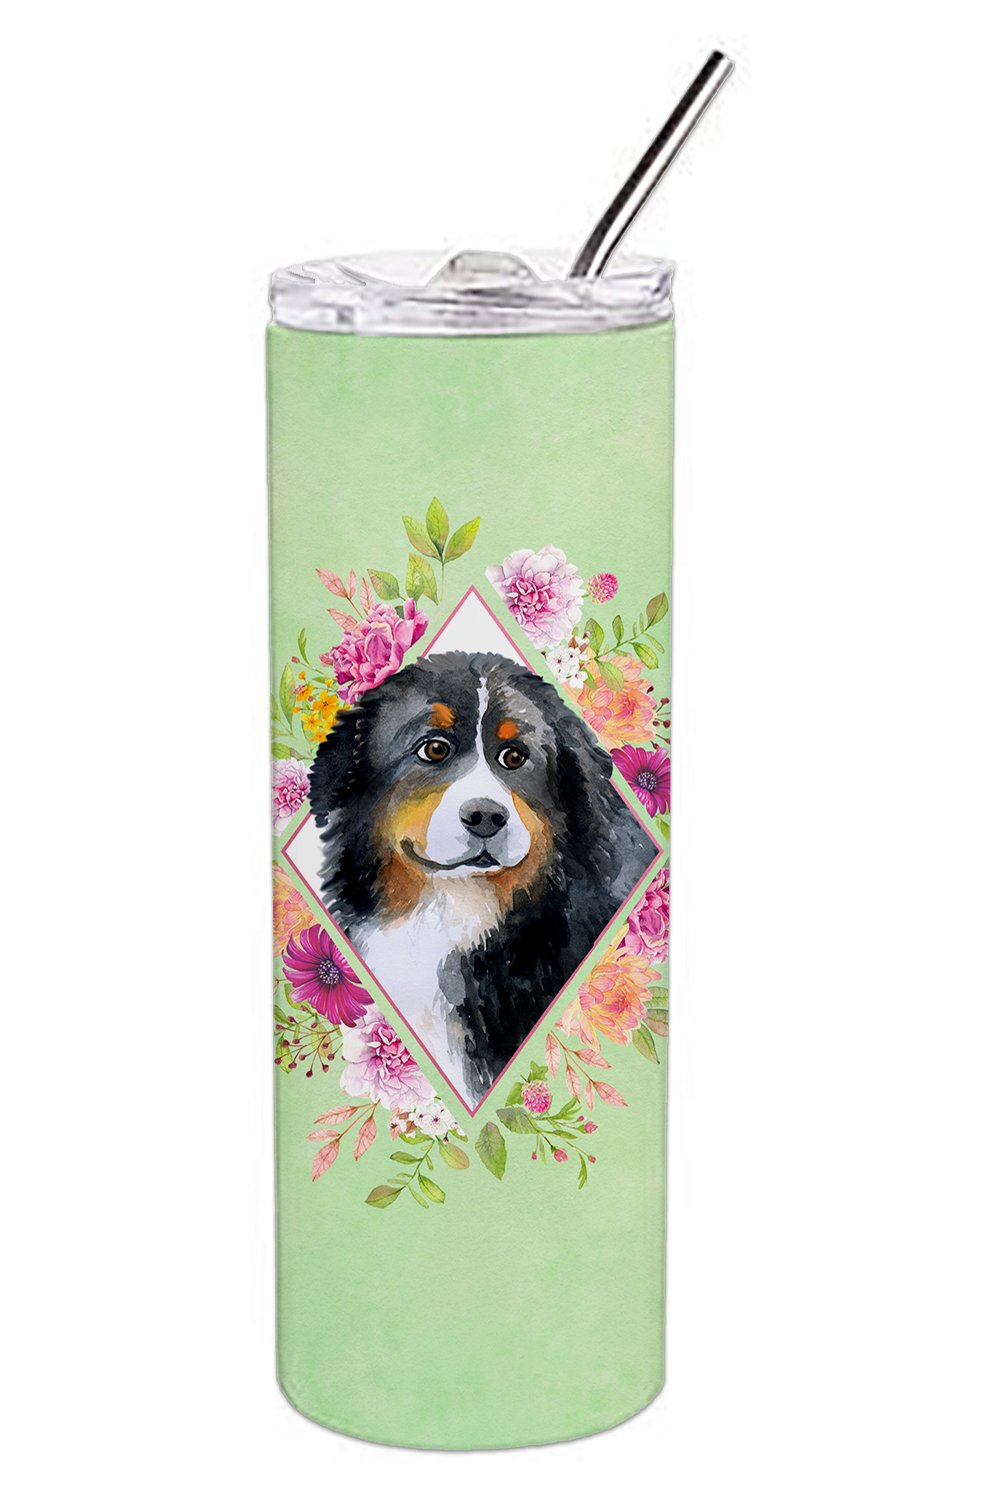 Bernese Mountain Dog Green Flowers Double Walled Stainless Steel 20 oz Skinny Tumbler CK4278TBL20 by Caroline's Treasures